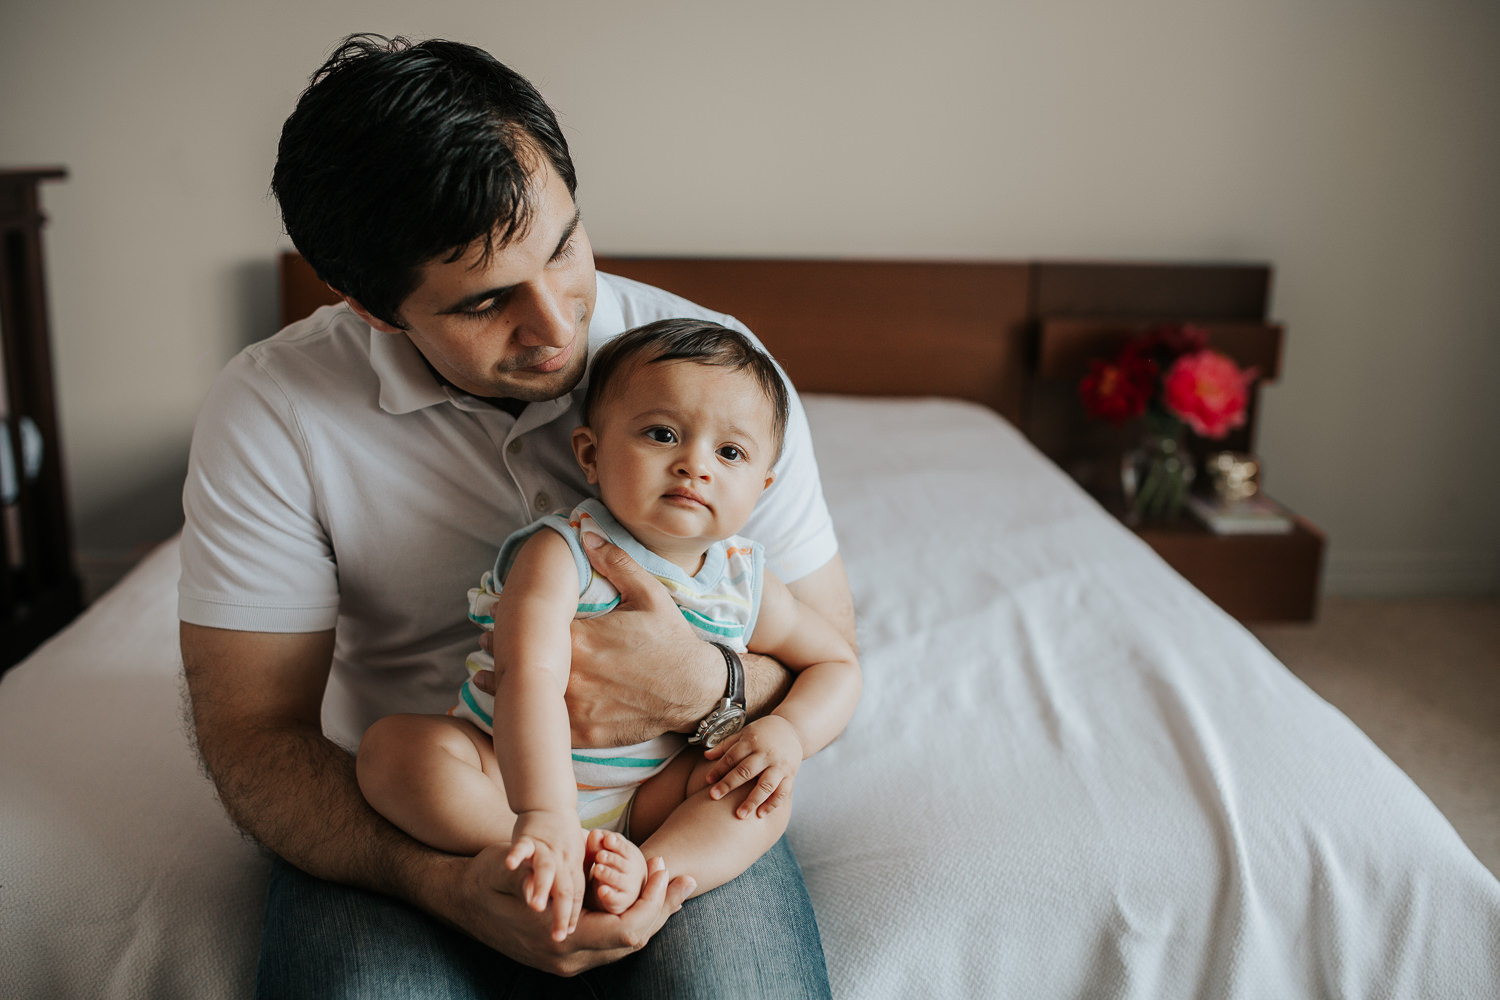 father sitting on bed with 8 month old baby boy in his lap, smiling at son who looks on - Stouffville In-Home Photography